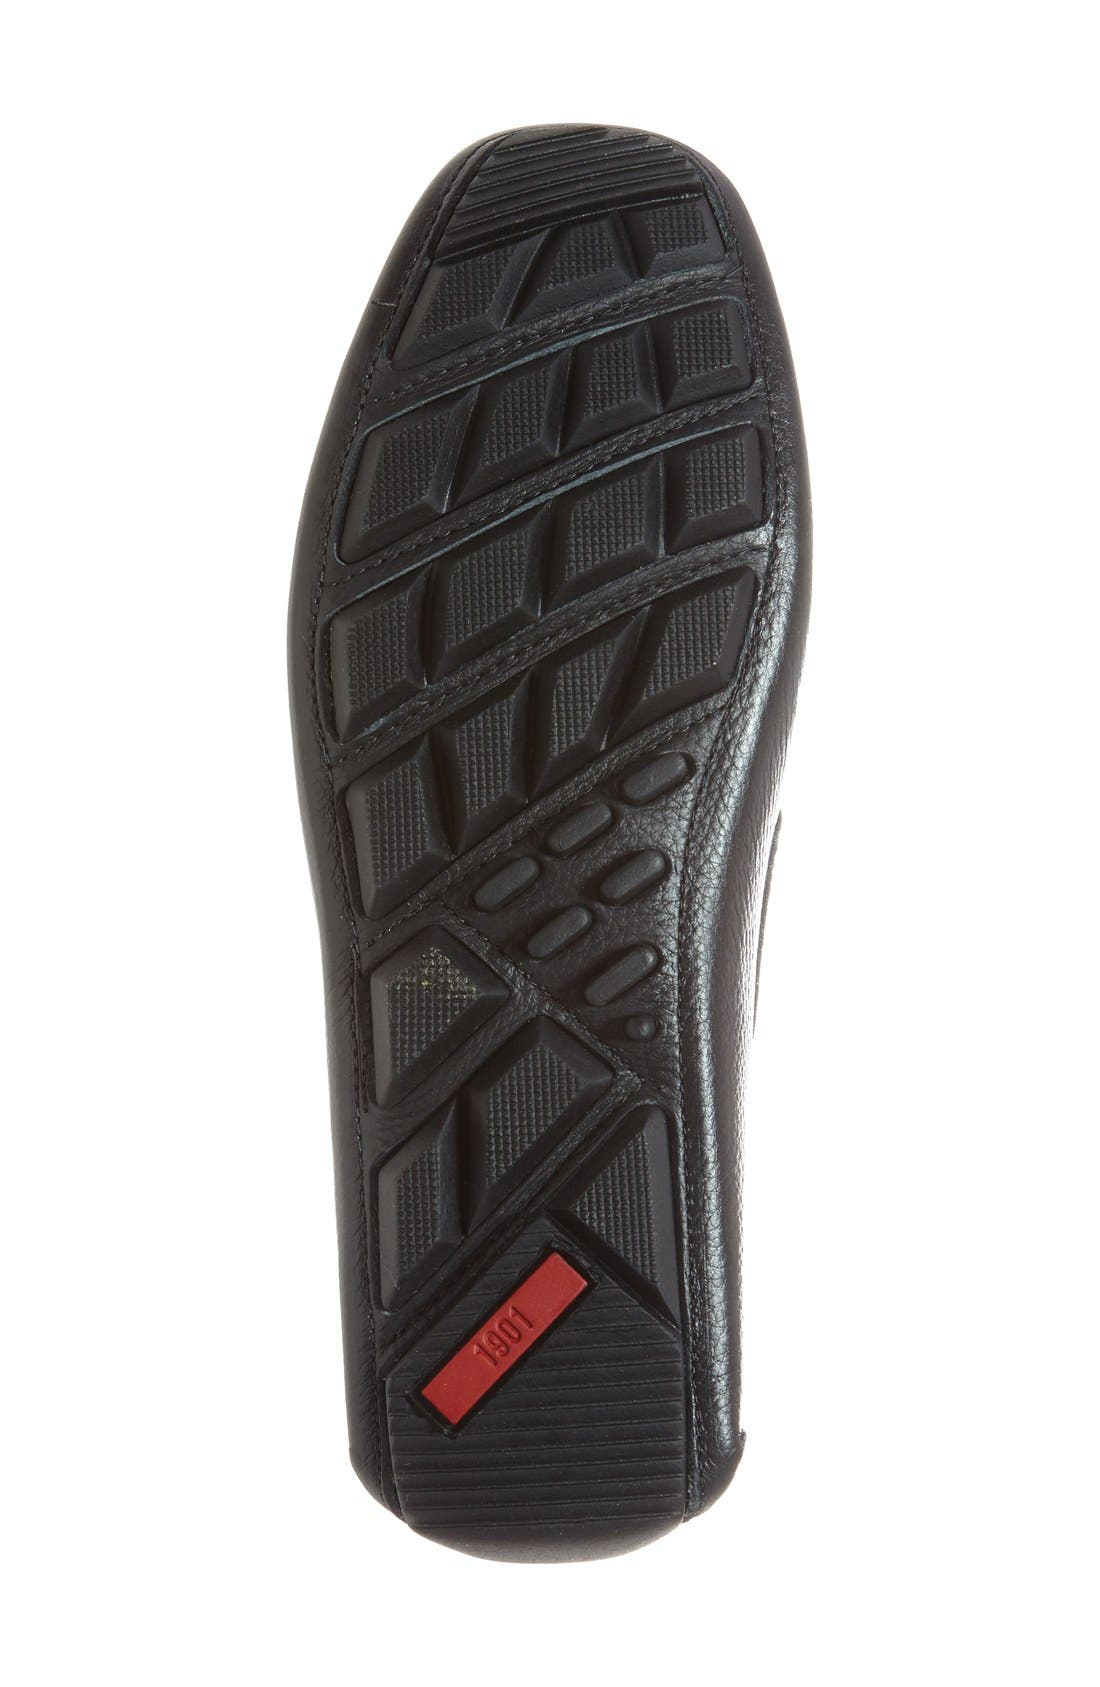 'Bermuda' Penny Loafer,                             Alternate thumbnail 4, color,                             Black Leather